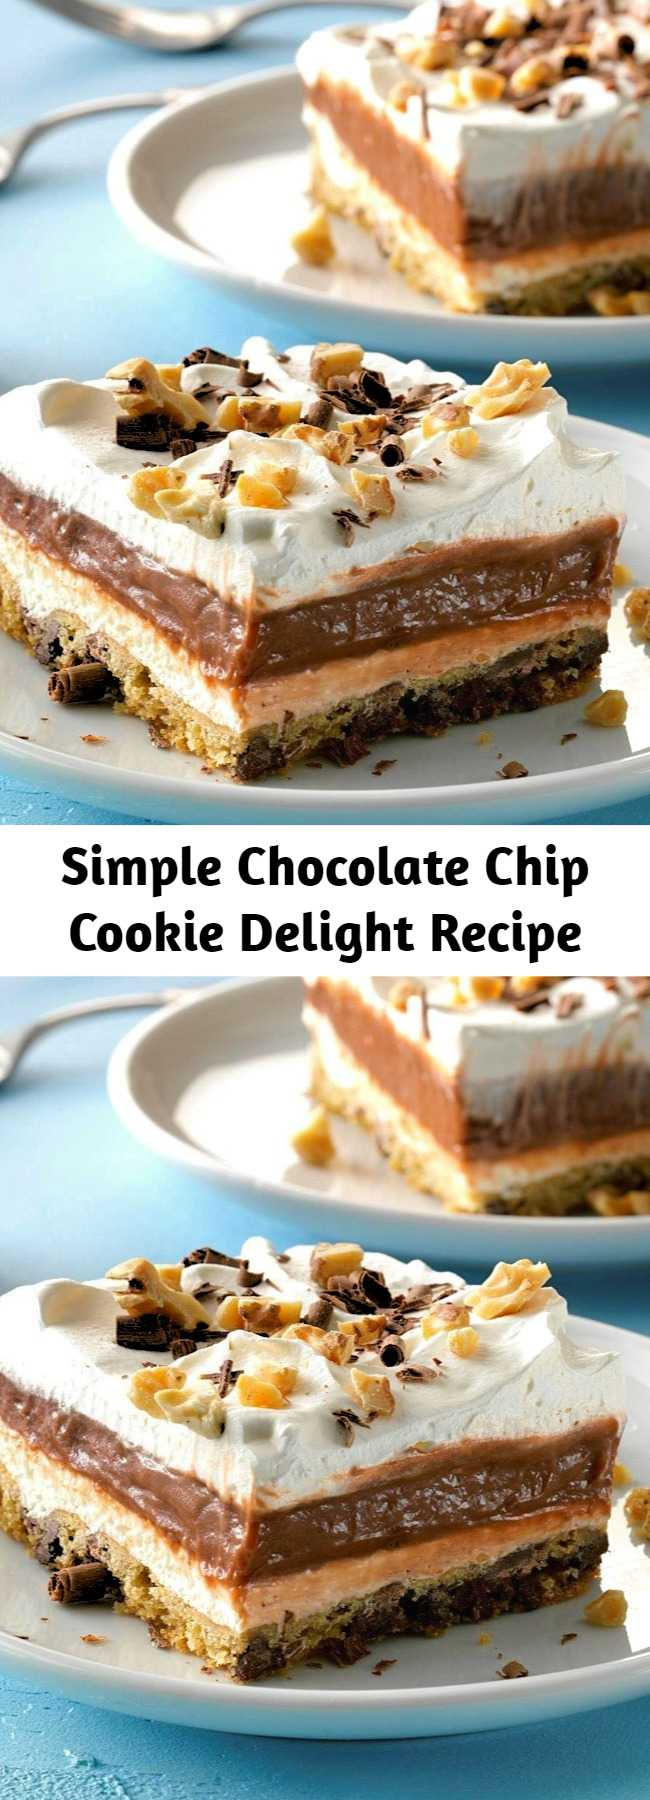 Simple Chocolate Chip Cookie Delight Recipe - Simple Chocolate Chip Cookie Delight Recipe - This is a simple chocolate delight recipe for any type of potluck occasion, and the pan always comes home empty.